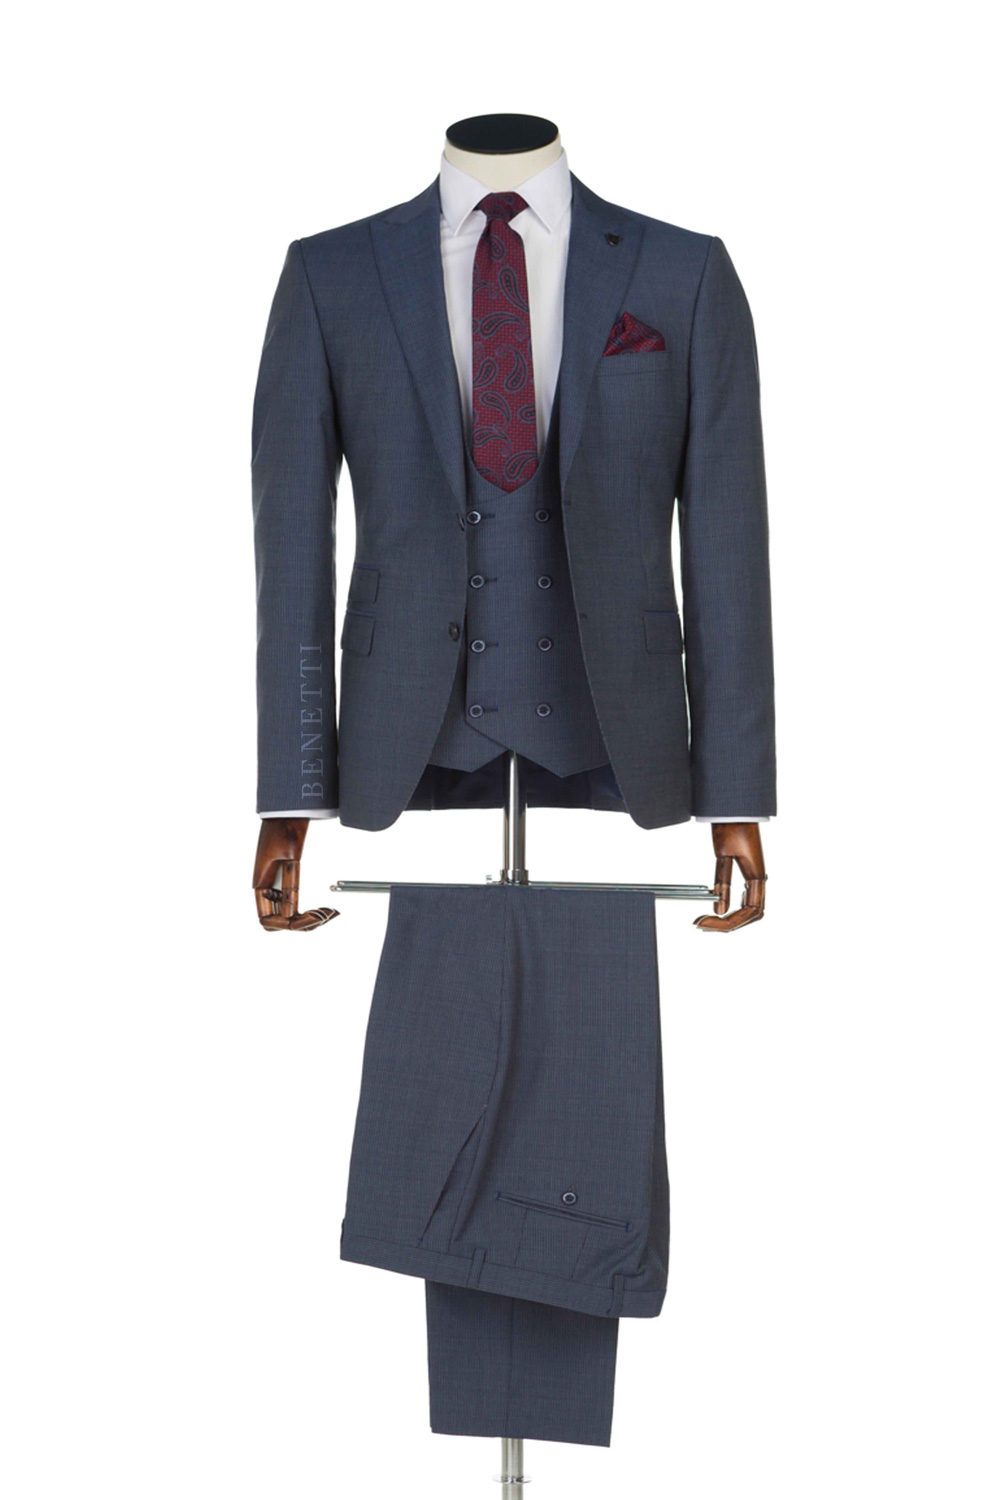 Hazard Navy Suit by Benetti